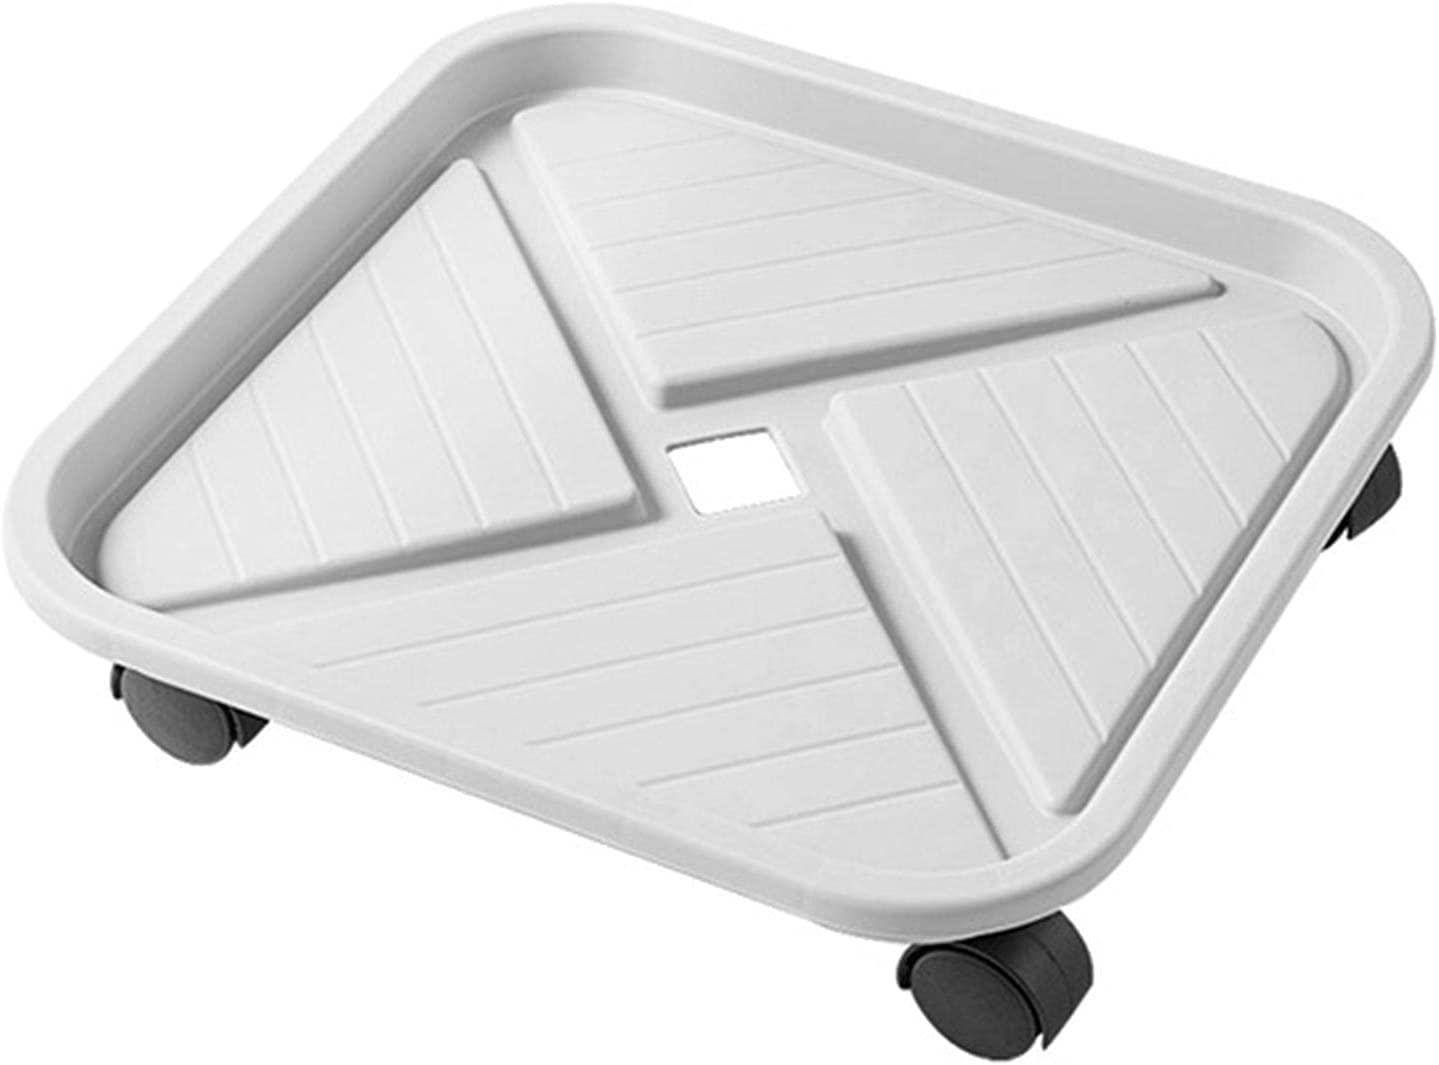 Tlymopukt Sale SALE% OFF Planter Caddy Square Plastic 4 Saucer with 100% quality warranty! W Universal